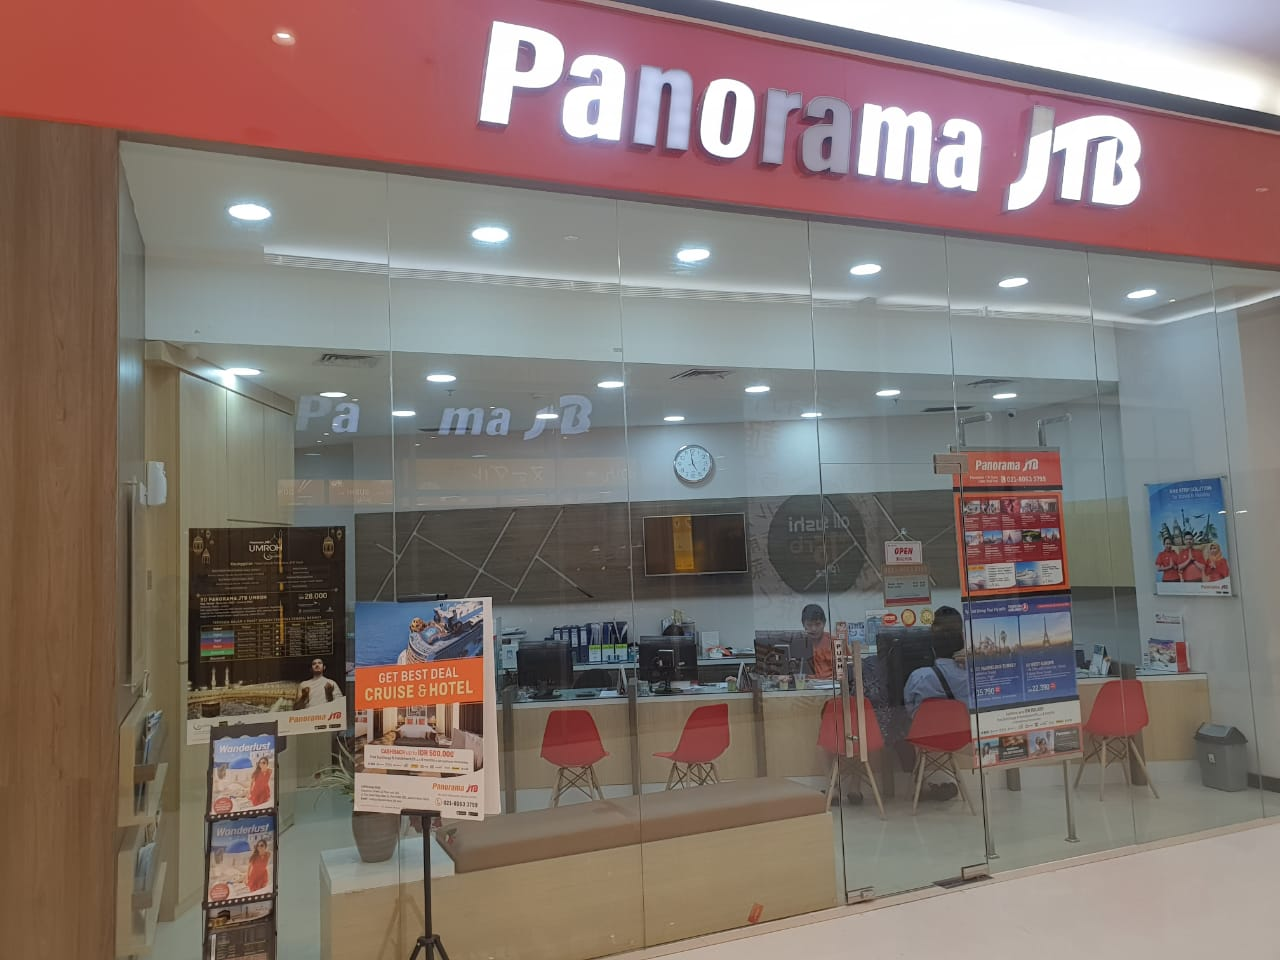 Panorama JTB shop front in lippo mall puri st. moritz